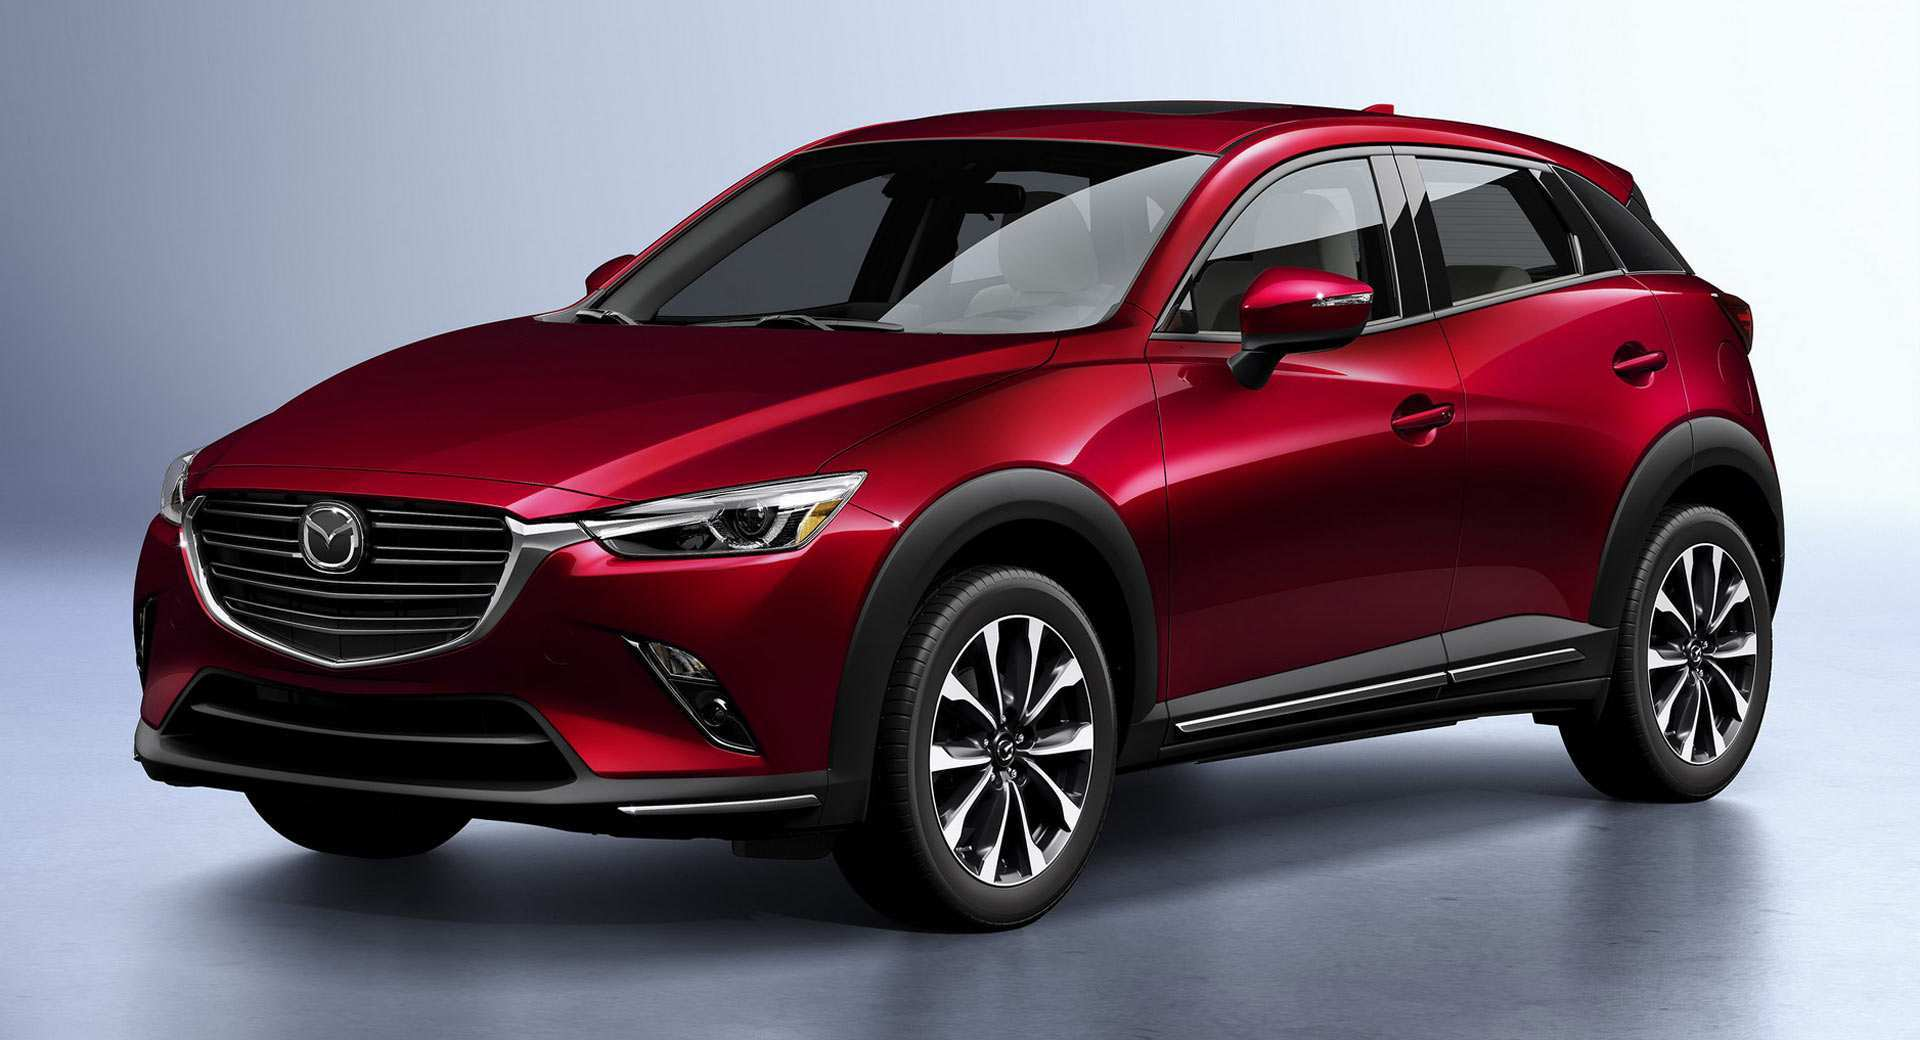 31 Concept of When Does Mazda Release 2020 Models Exterior for When Does Mazda Release 2020 Models